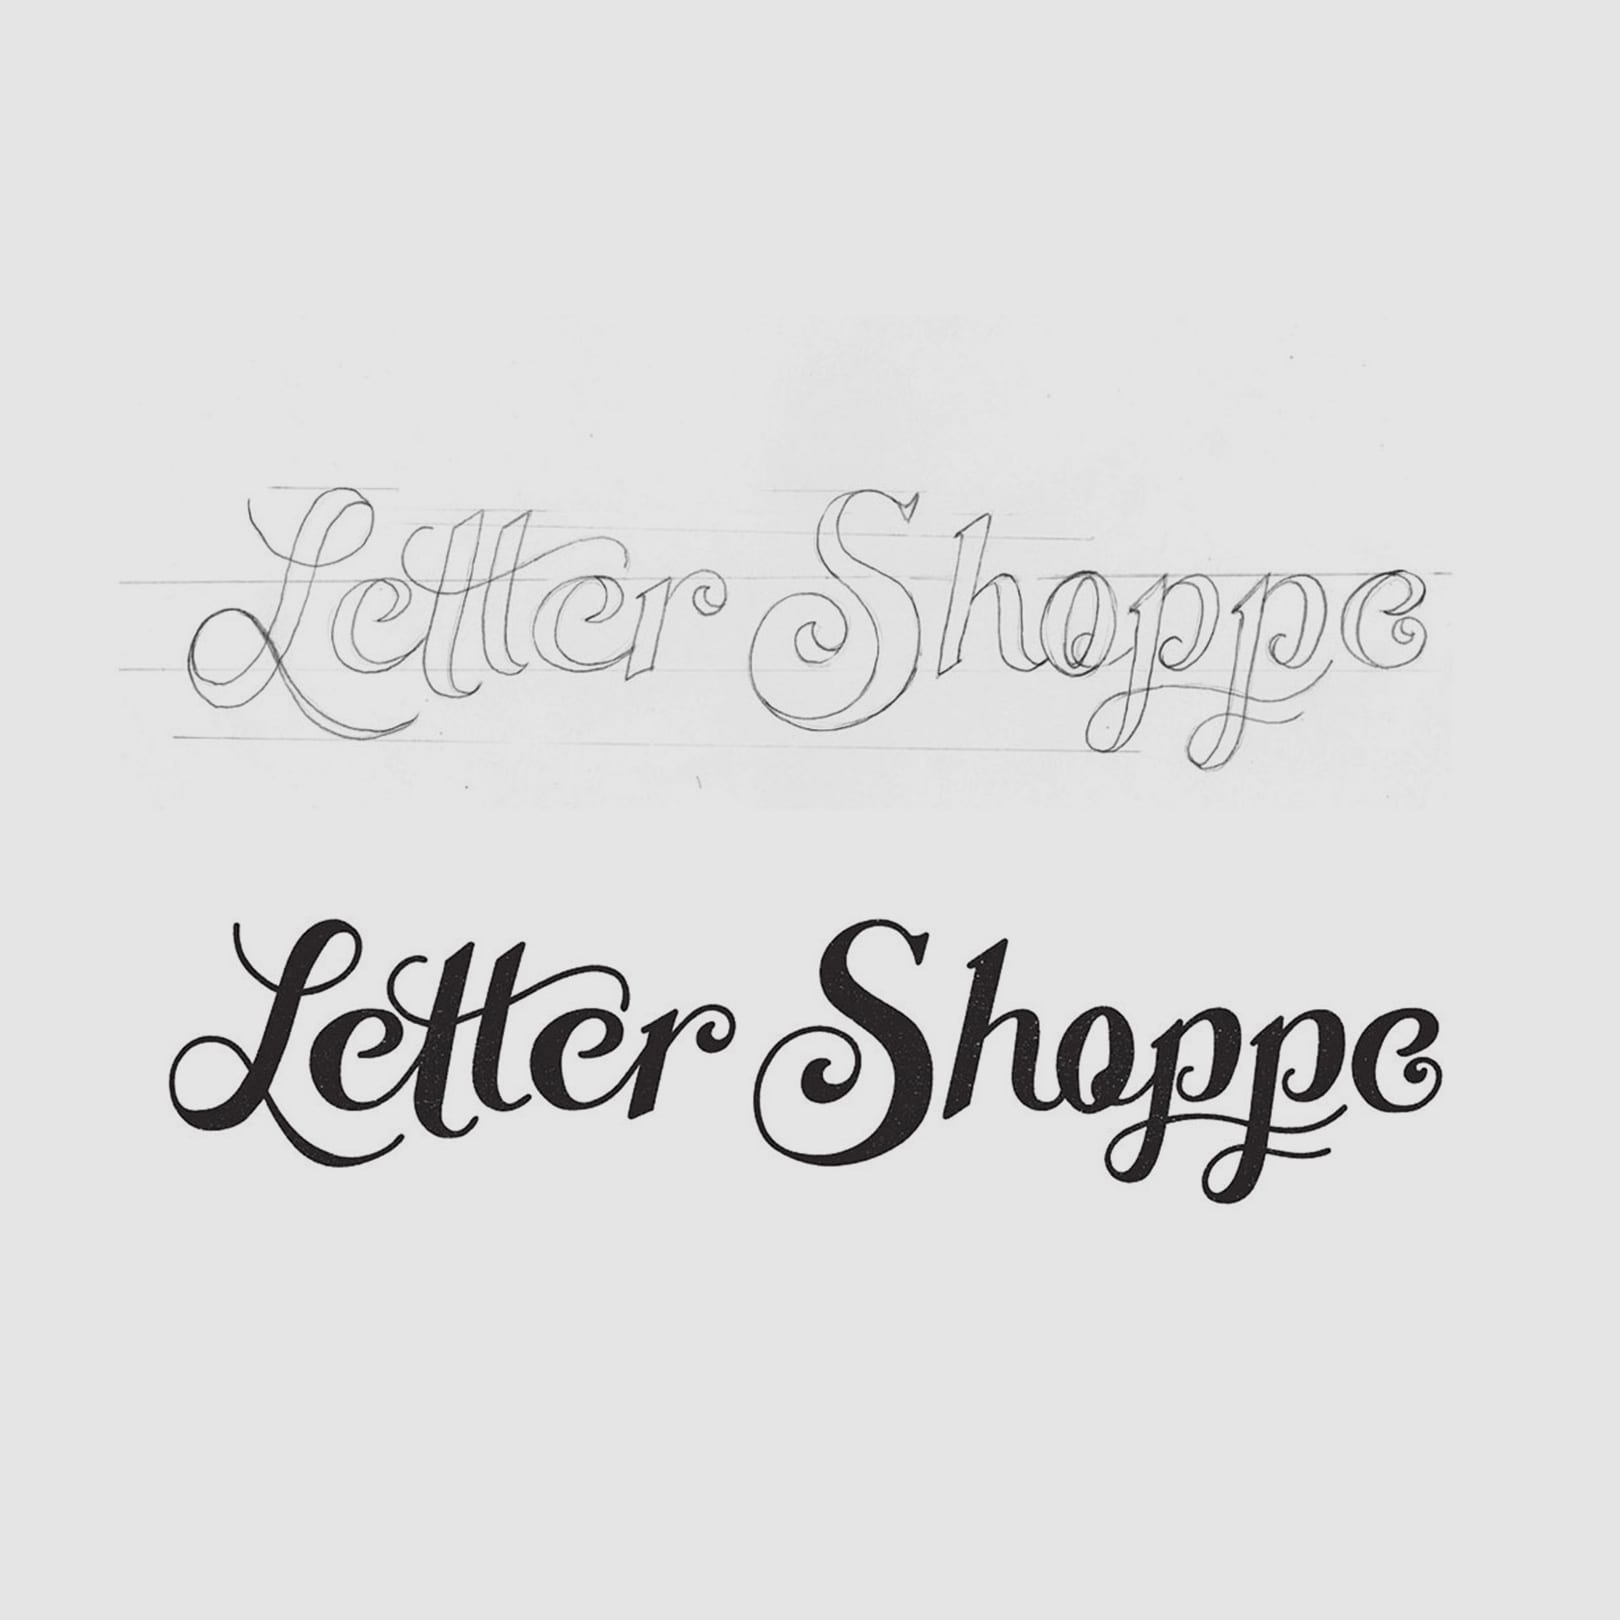 Calligraphy Input Online Creating A Hand Lettered Logo Design Inside Design Blog